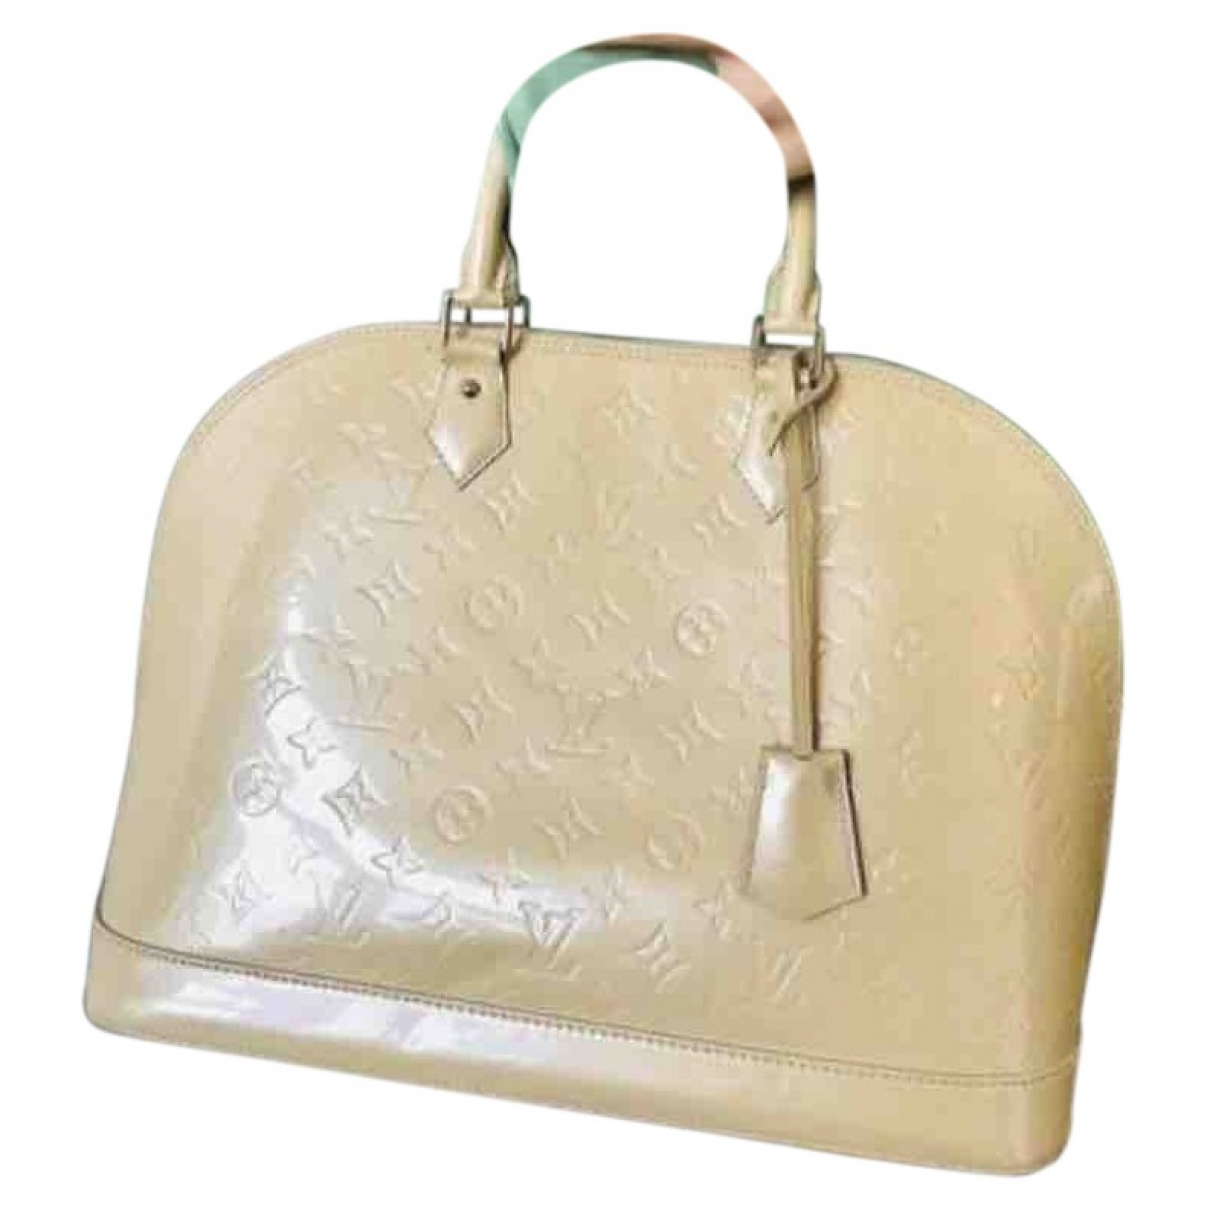 Louis Vuitton Alma Handtasche in  Beige Lackleder